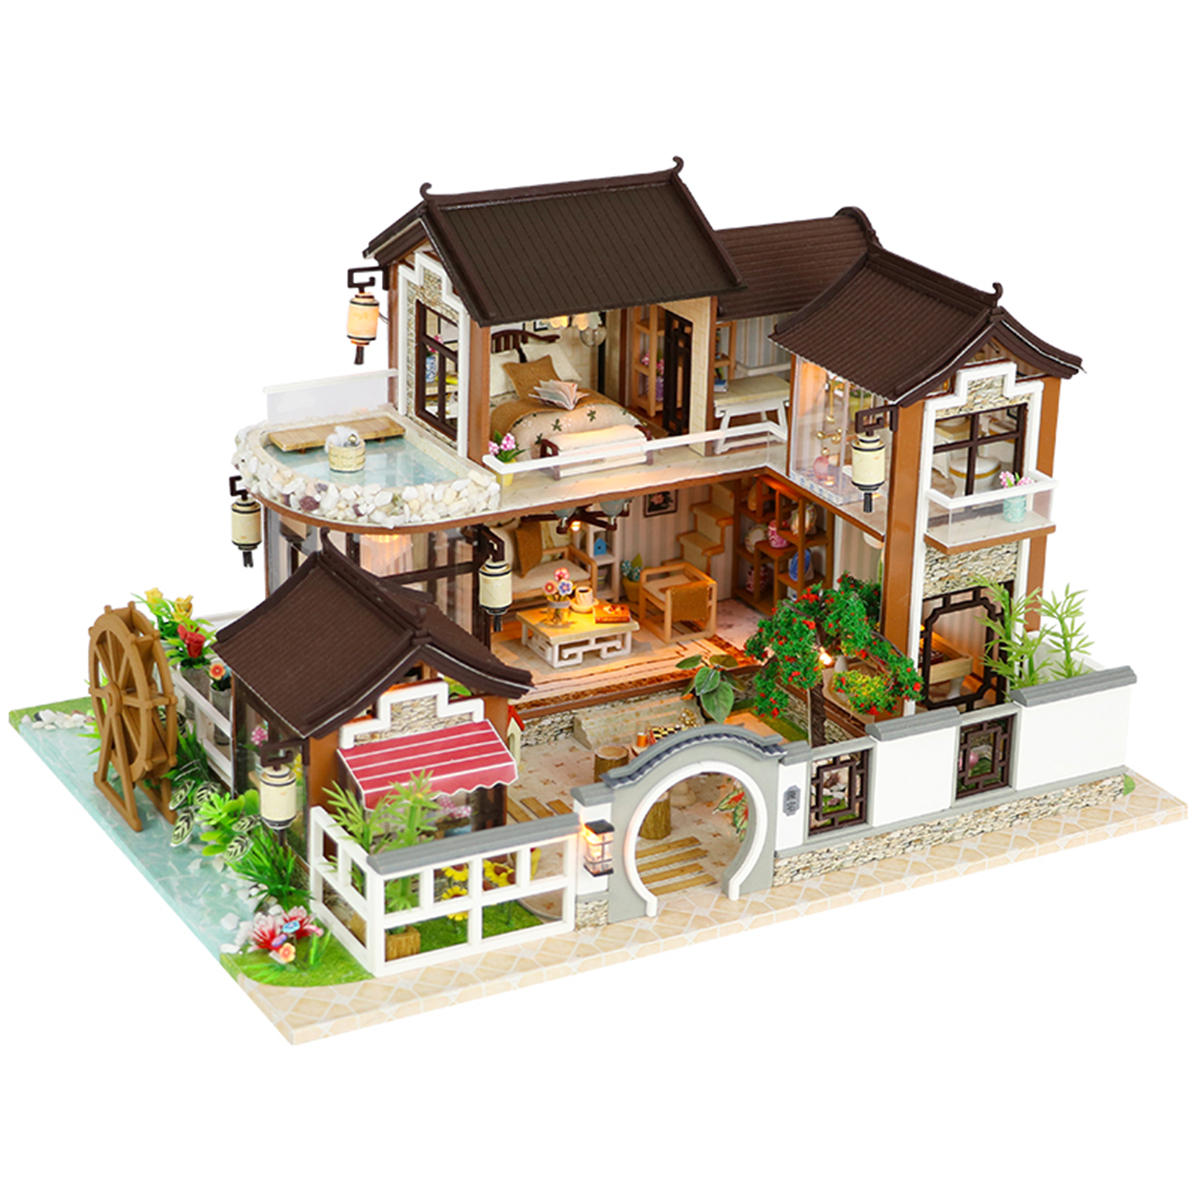 Robotime Miniature Green Garden With Furniture Children Adult Model Building Kits Doll House - 1